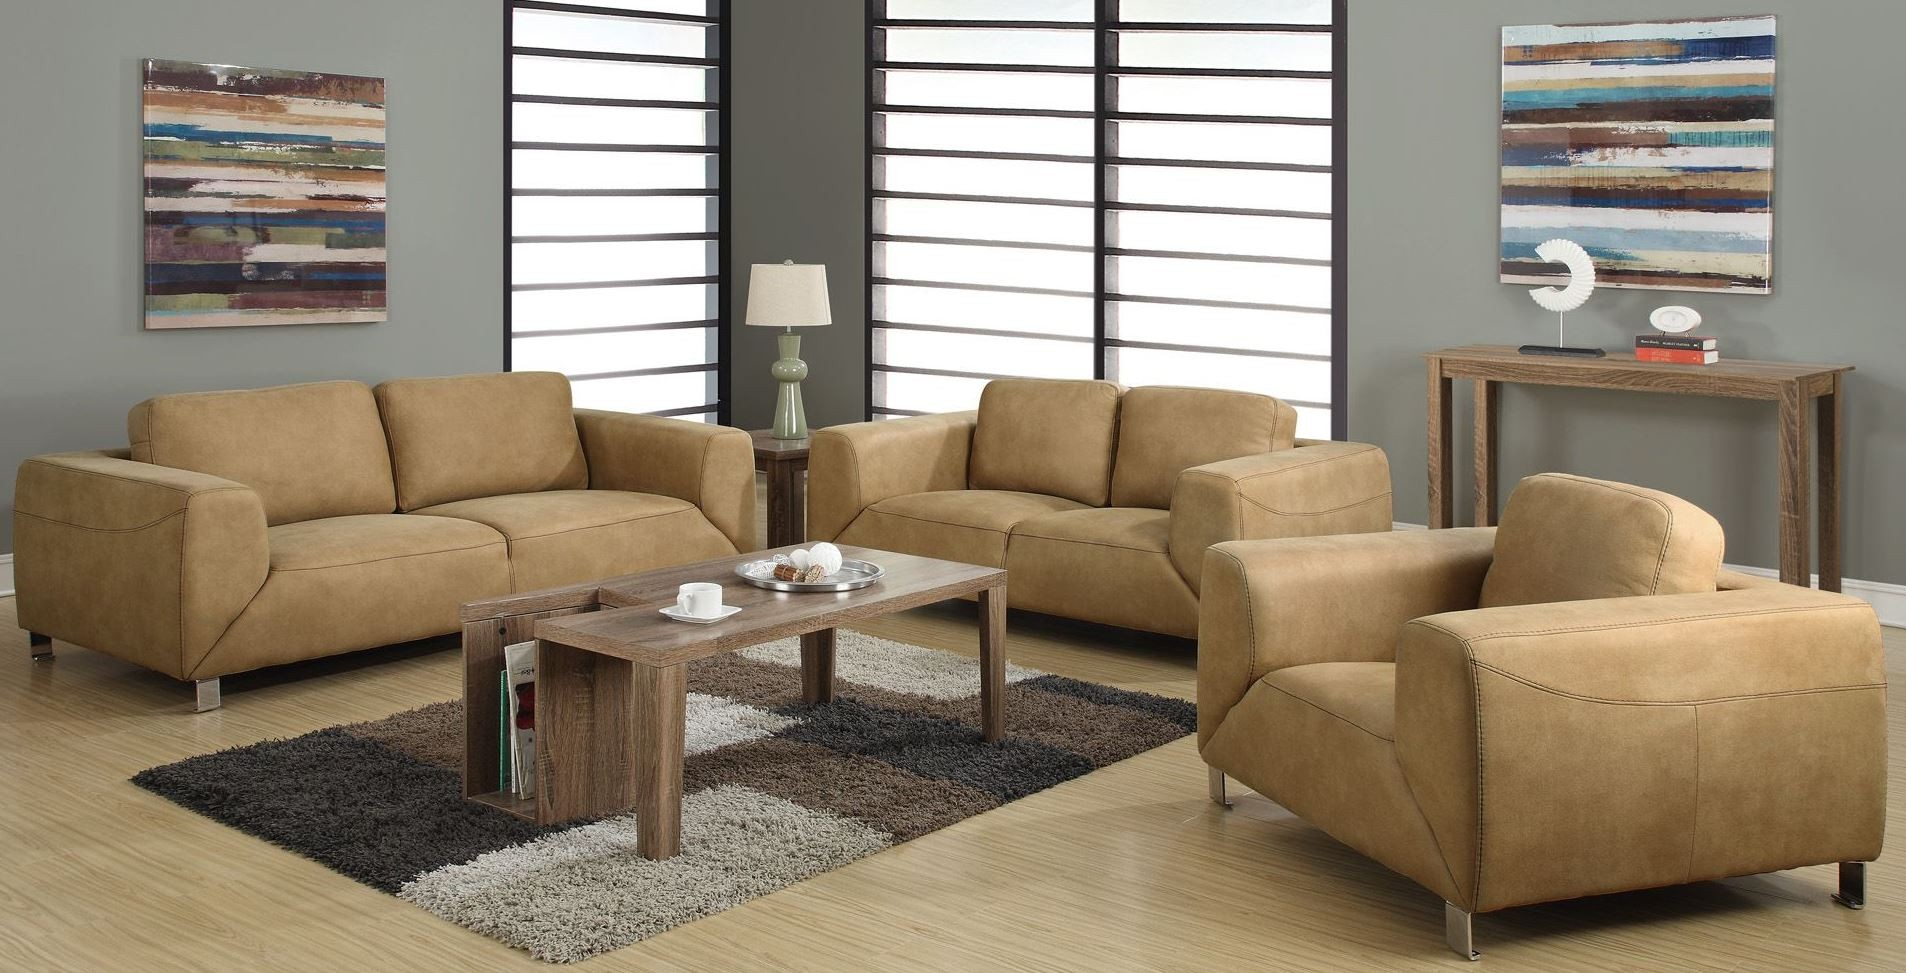 Tan chocolate brown contrast micro suede living room set from monarch 8513tn coleman furniture for Microsuede living room furniture